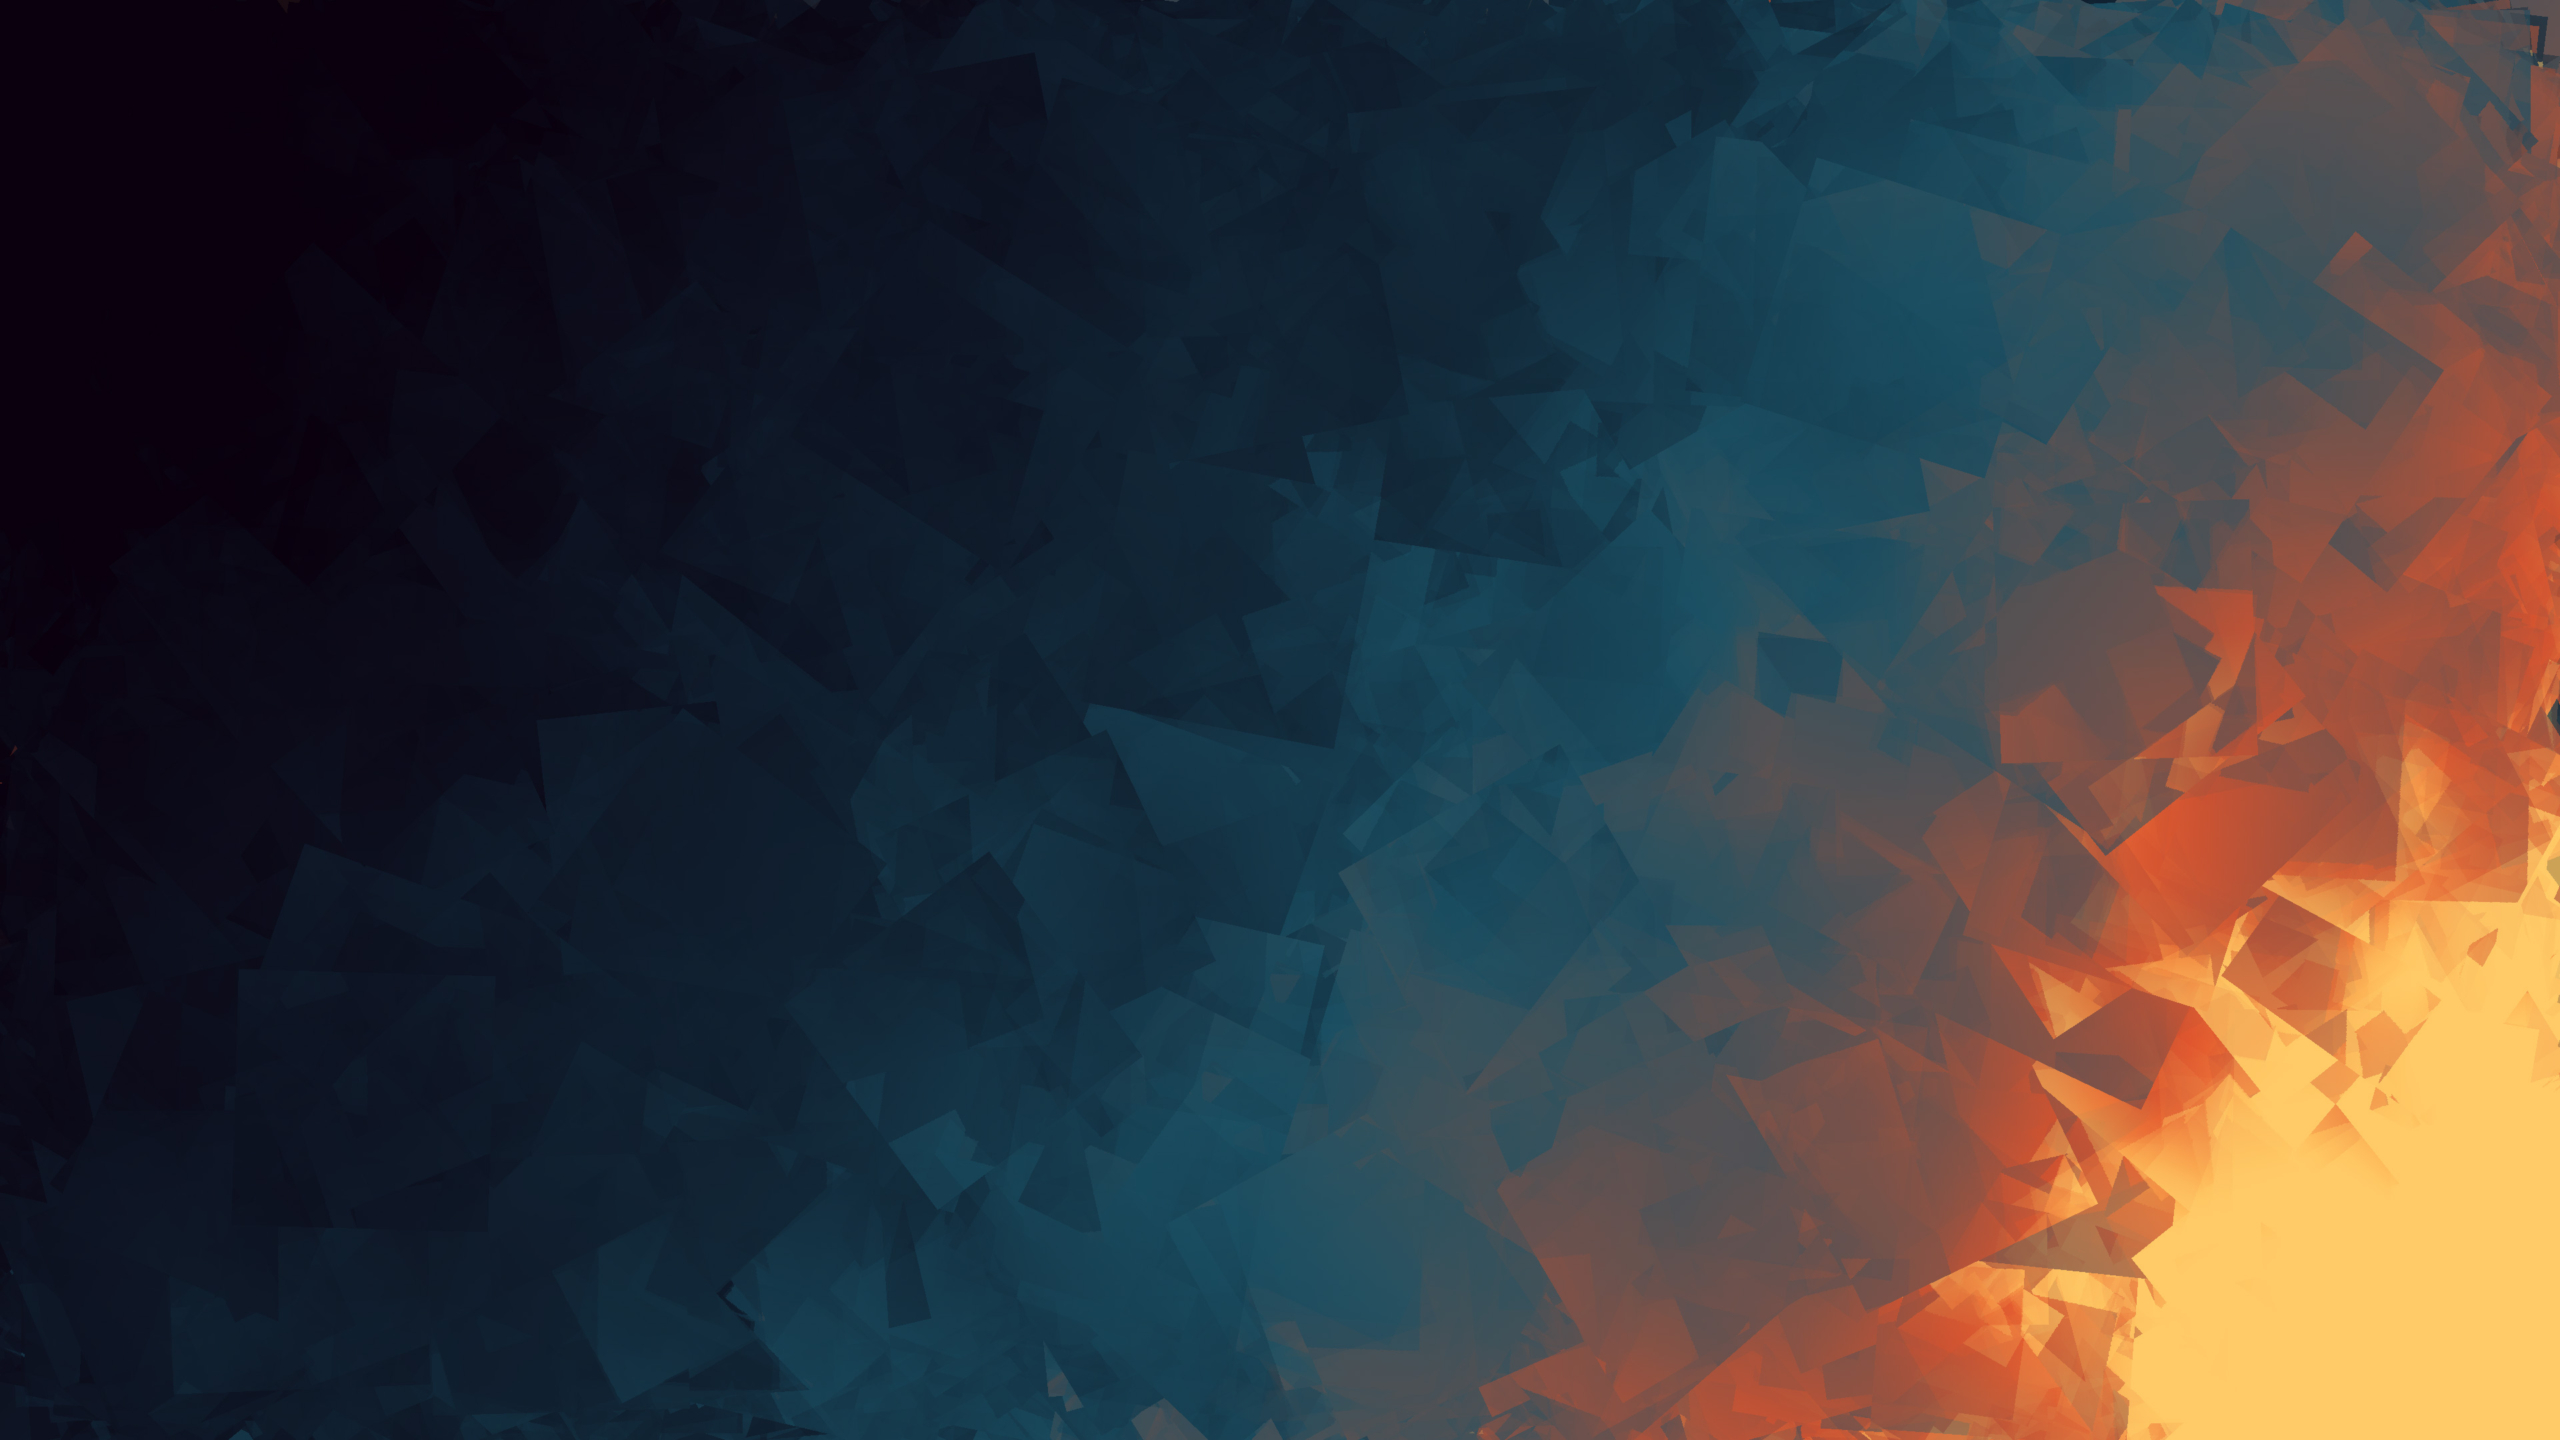 Dark Abstract Background for Desktop Use